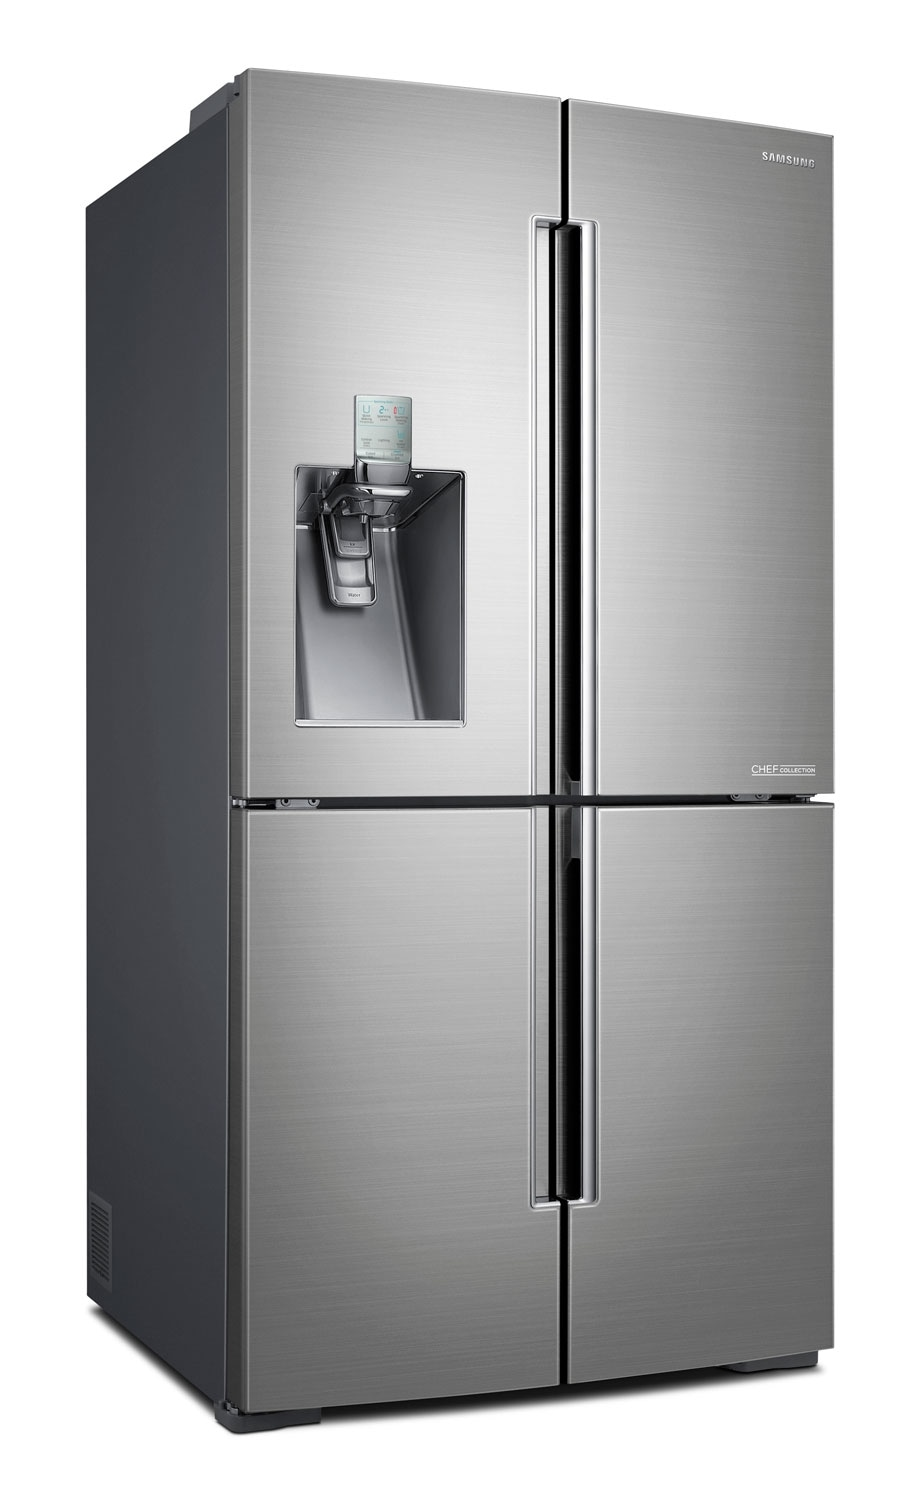 Samsung Stainless Steel French Door Refrigerator (34.3 Cu. Ft.) - RF34H9960SR